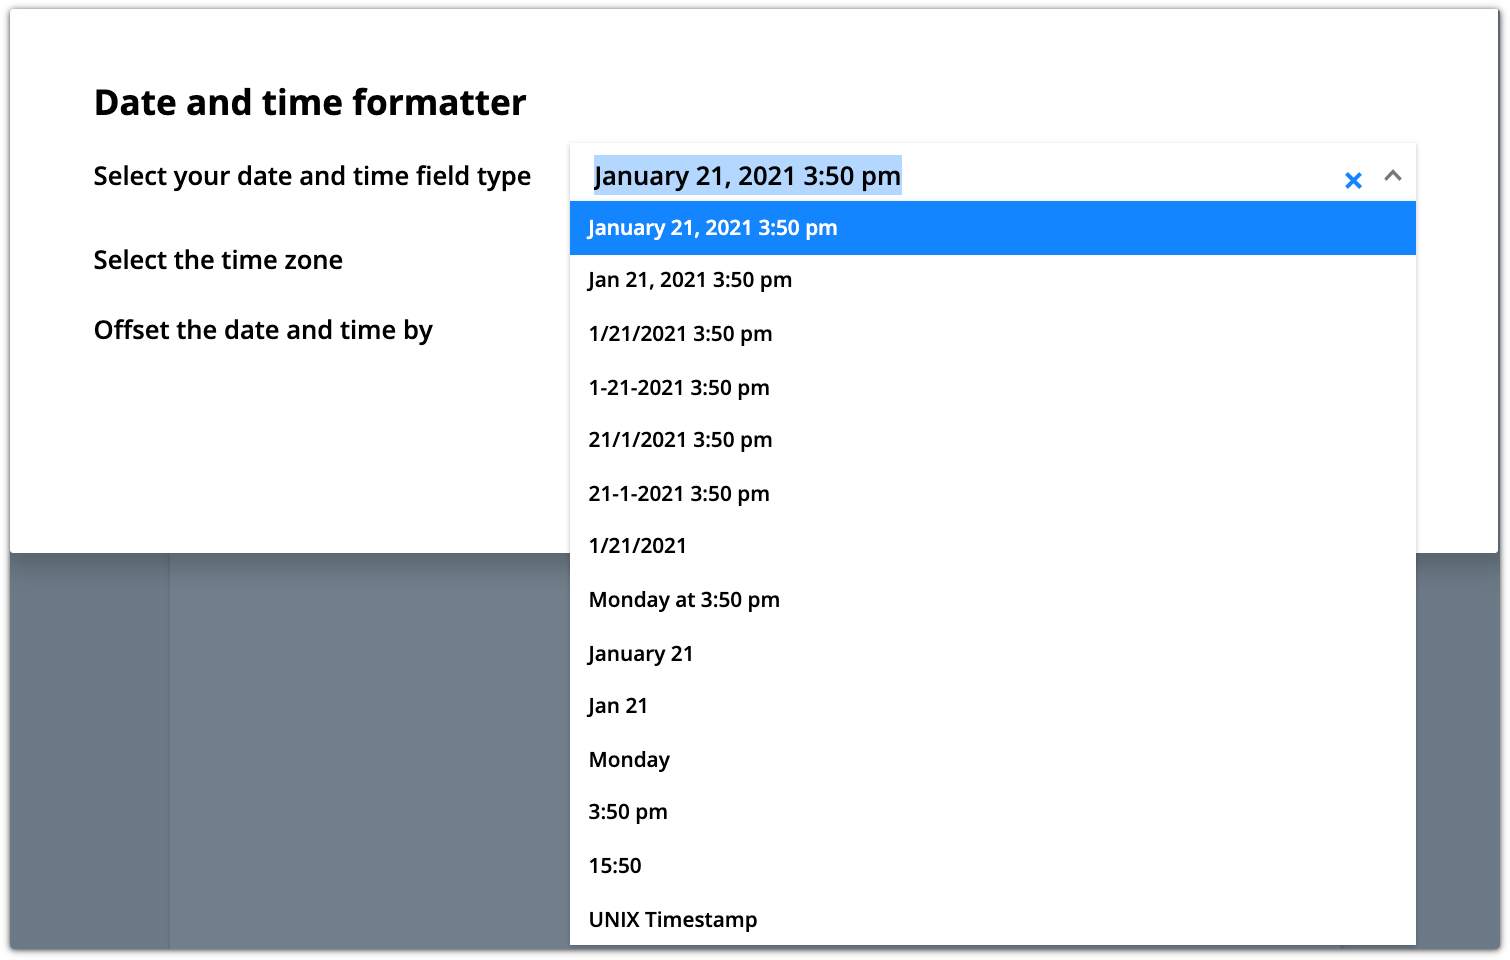 Date and time merge field formatter